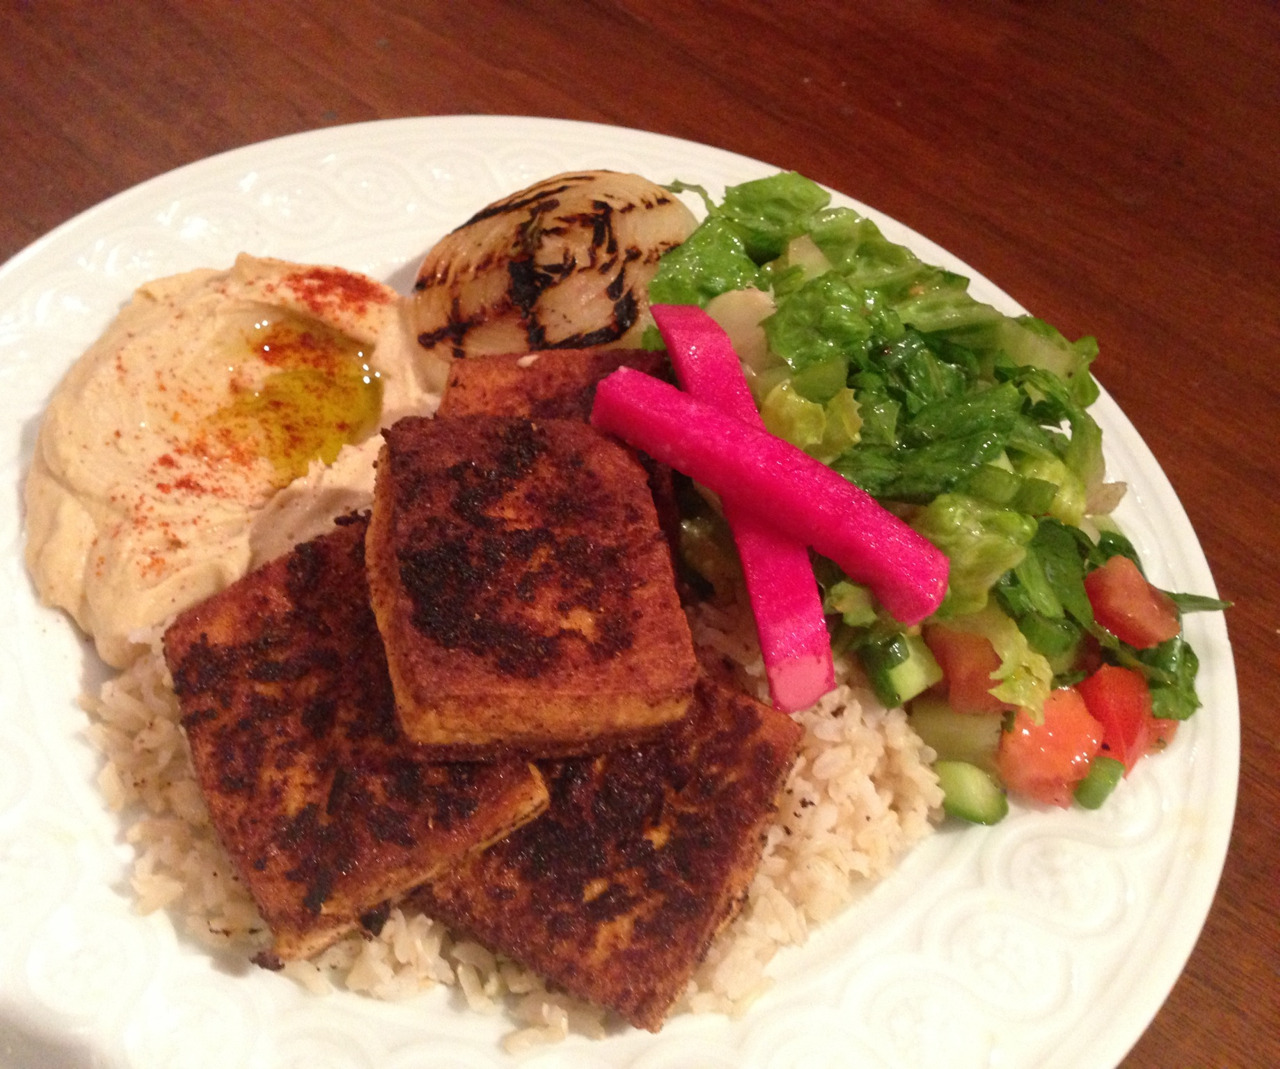 Moroccan spiced fried tofu, brown basmati rice, hummus, grilled onion, fatoush salad, and pickled turnip.